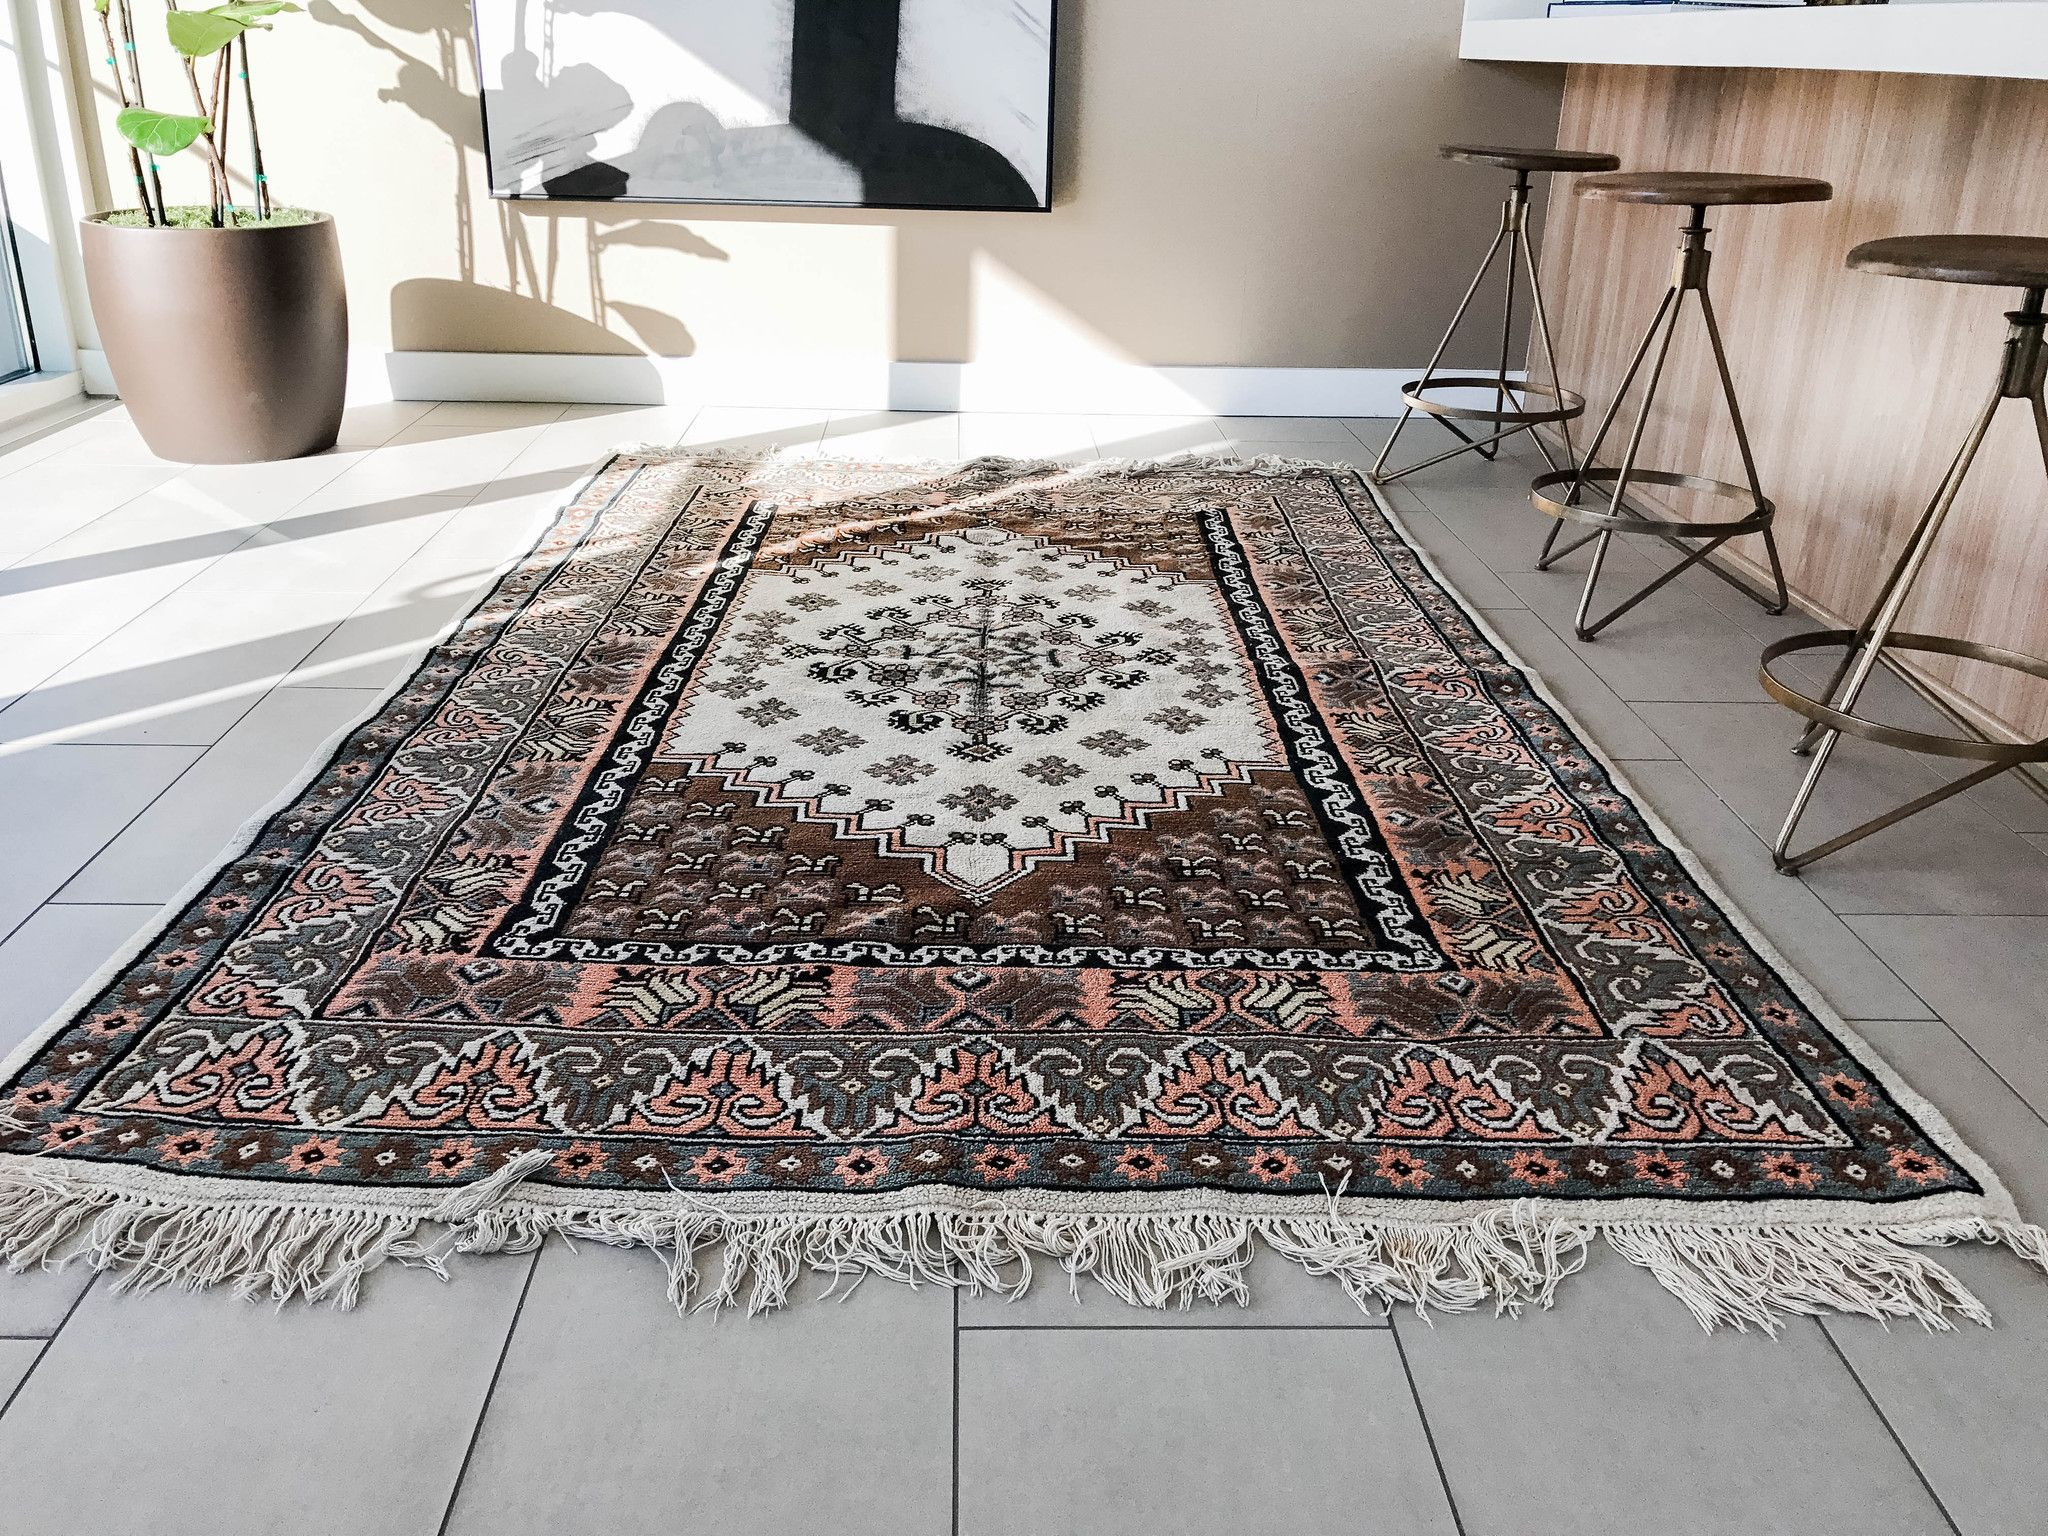 A Guide To Ing Rugs Online Let S Be Honest Rug Is Kinda